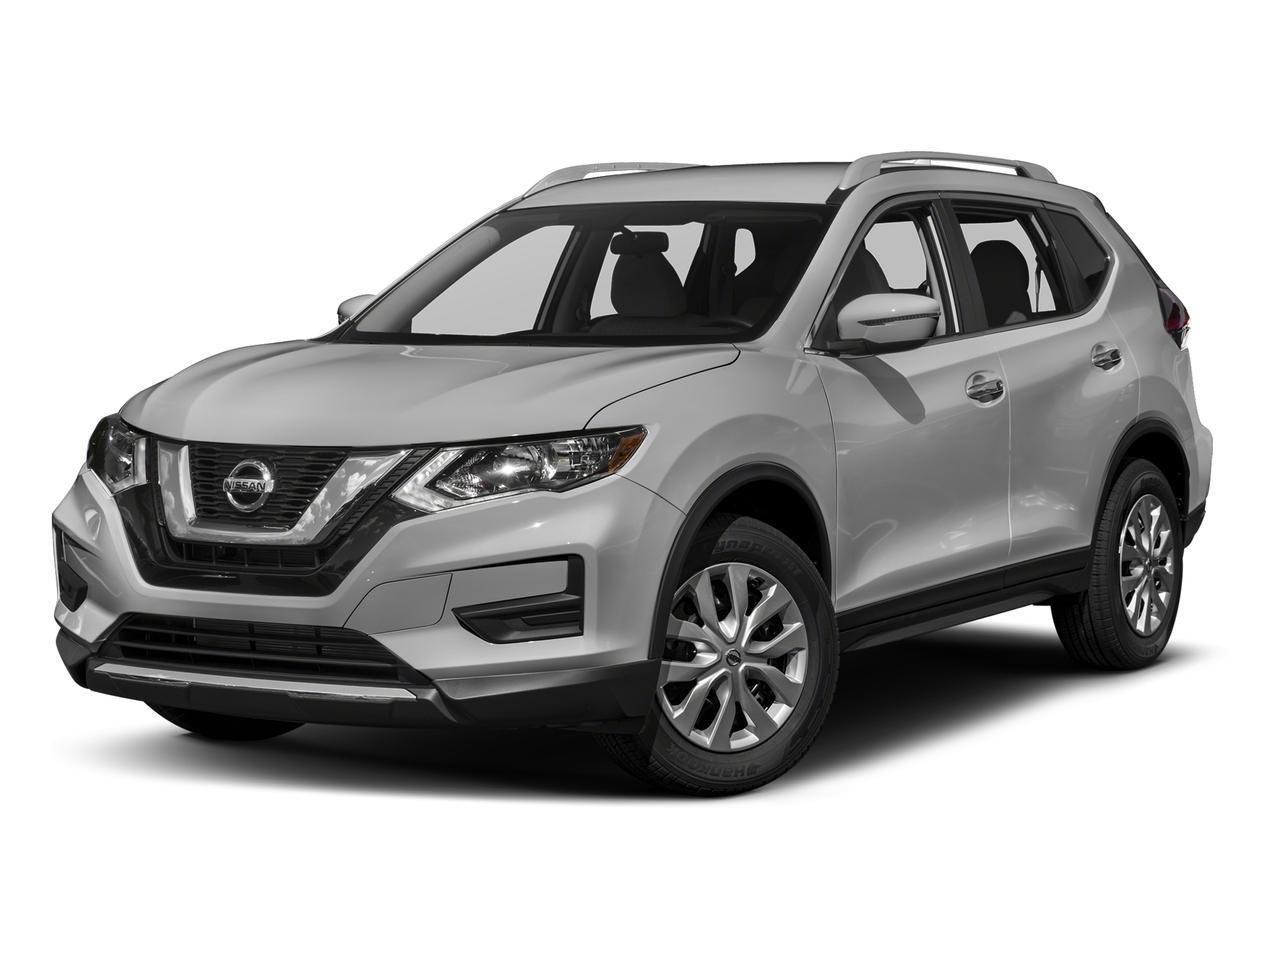 2017 Nissan Rogue Vehicle Photo in Trevose, PA 19053